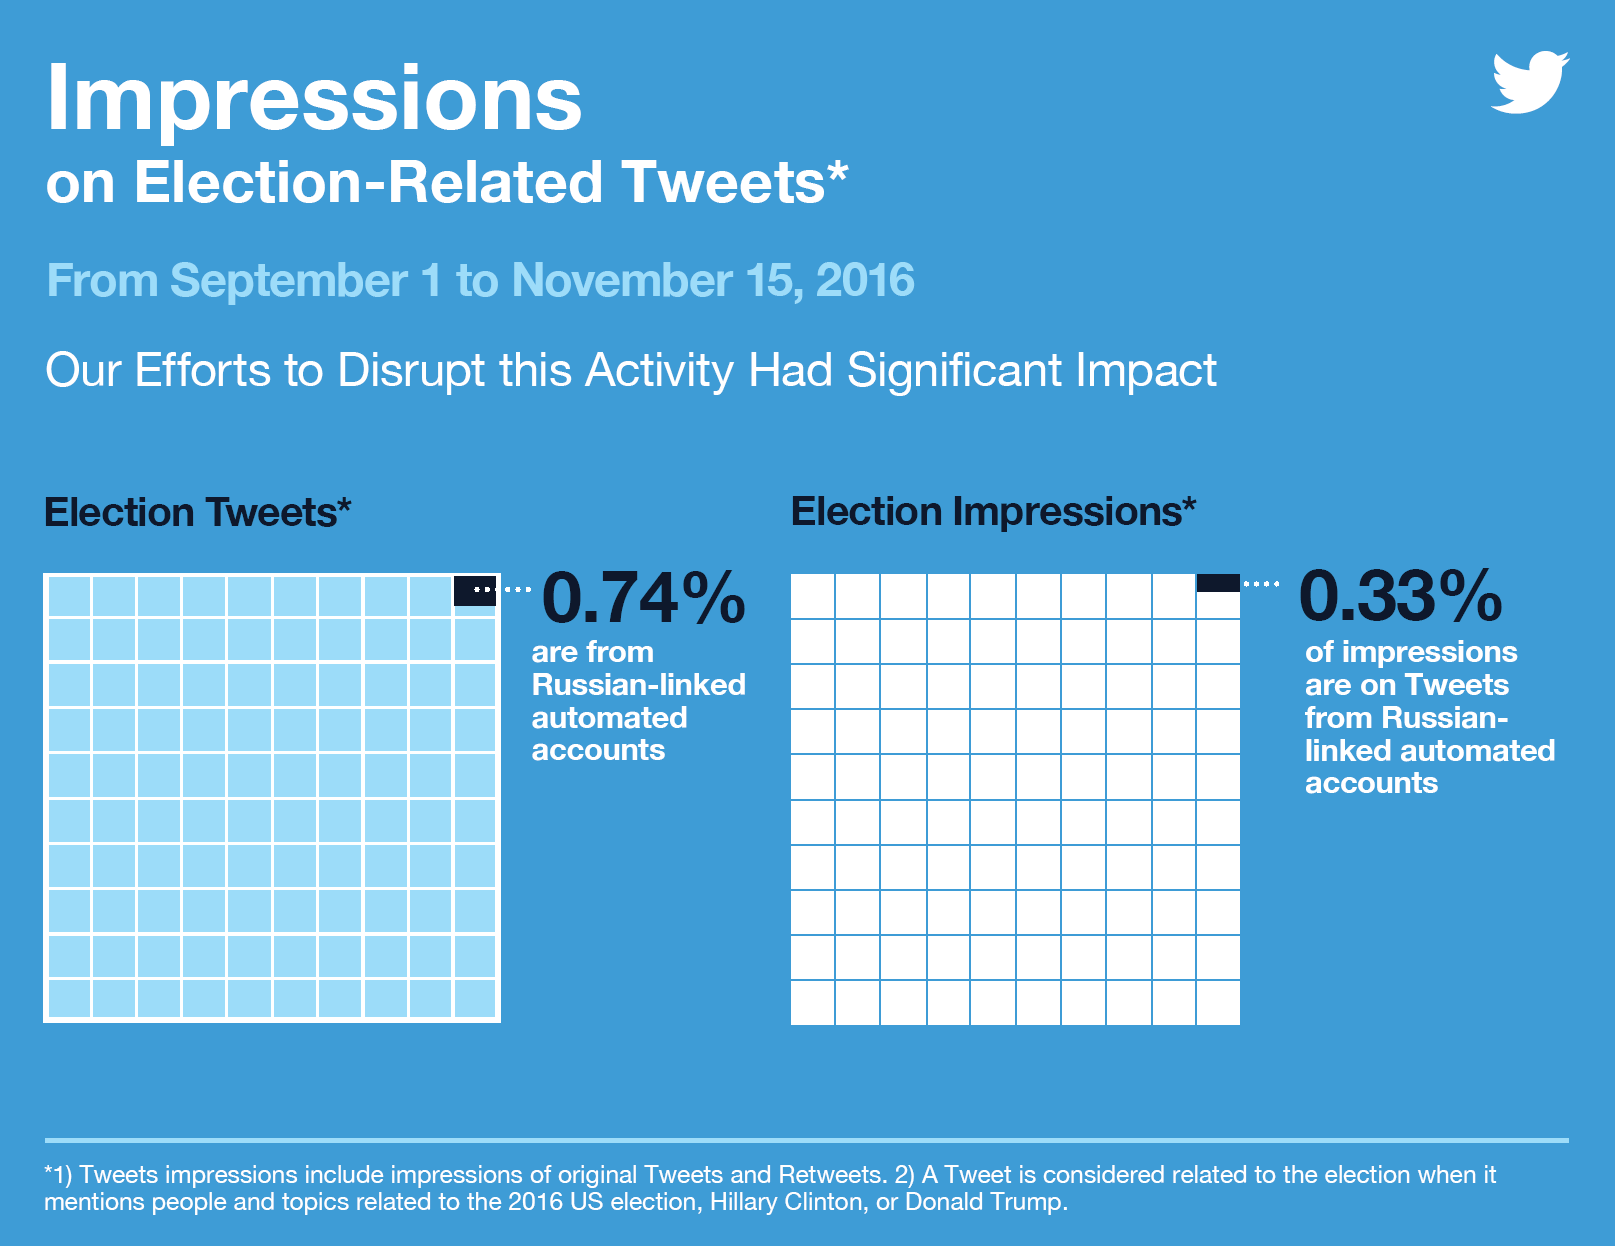 Image: Impressions on Election-Related Tweets